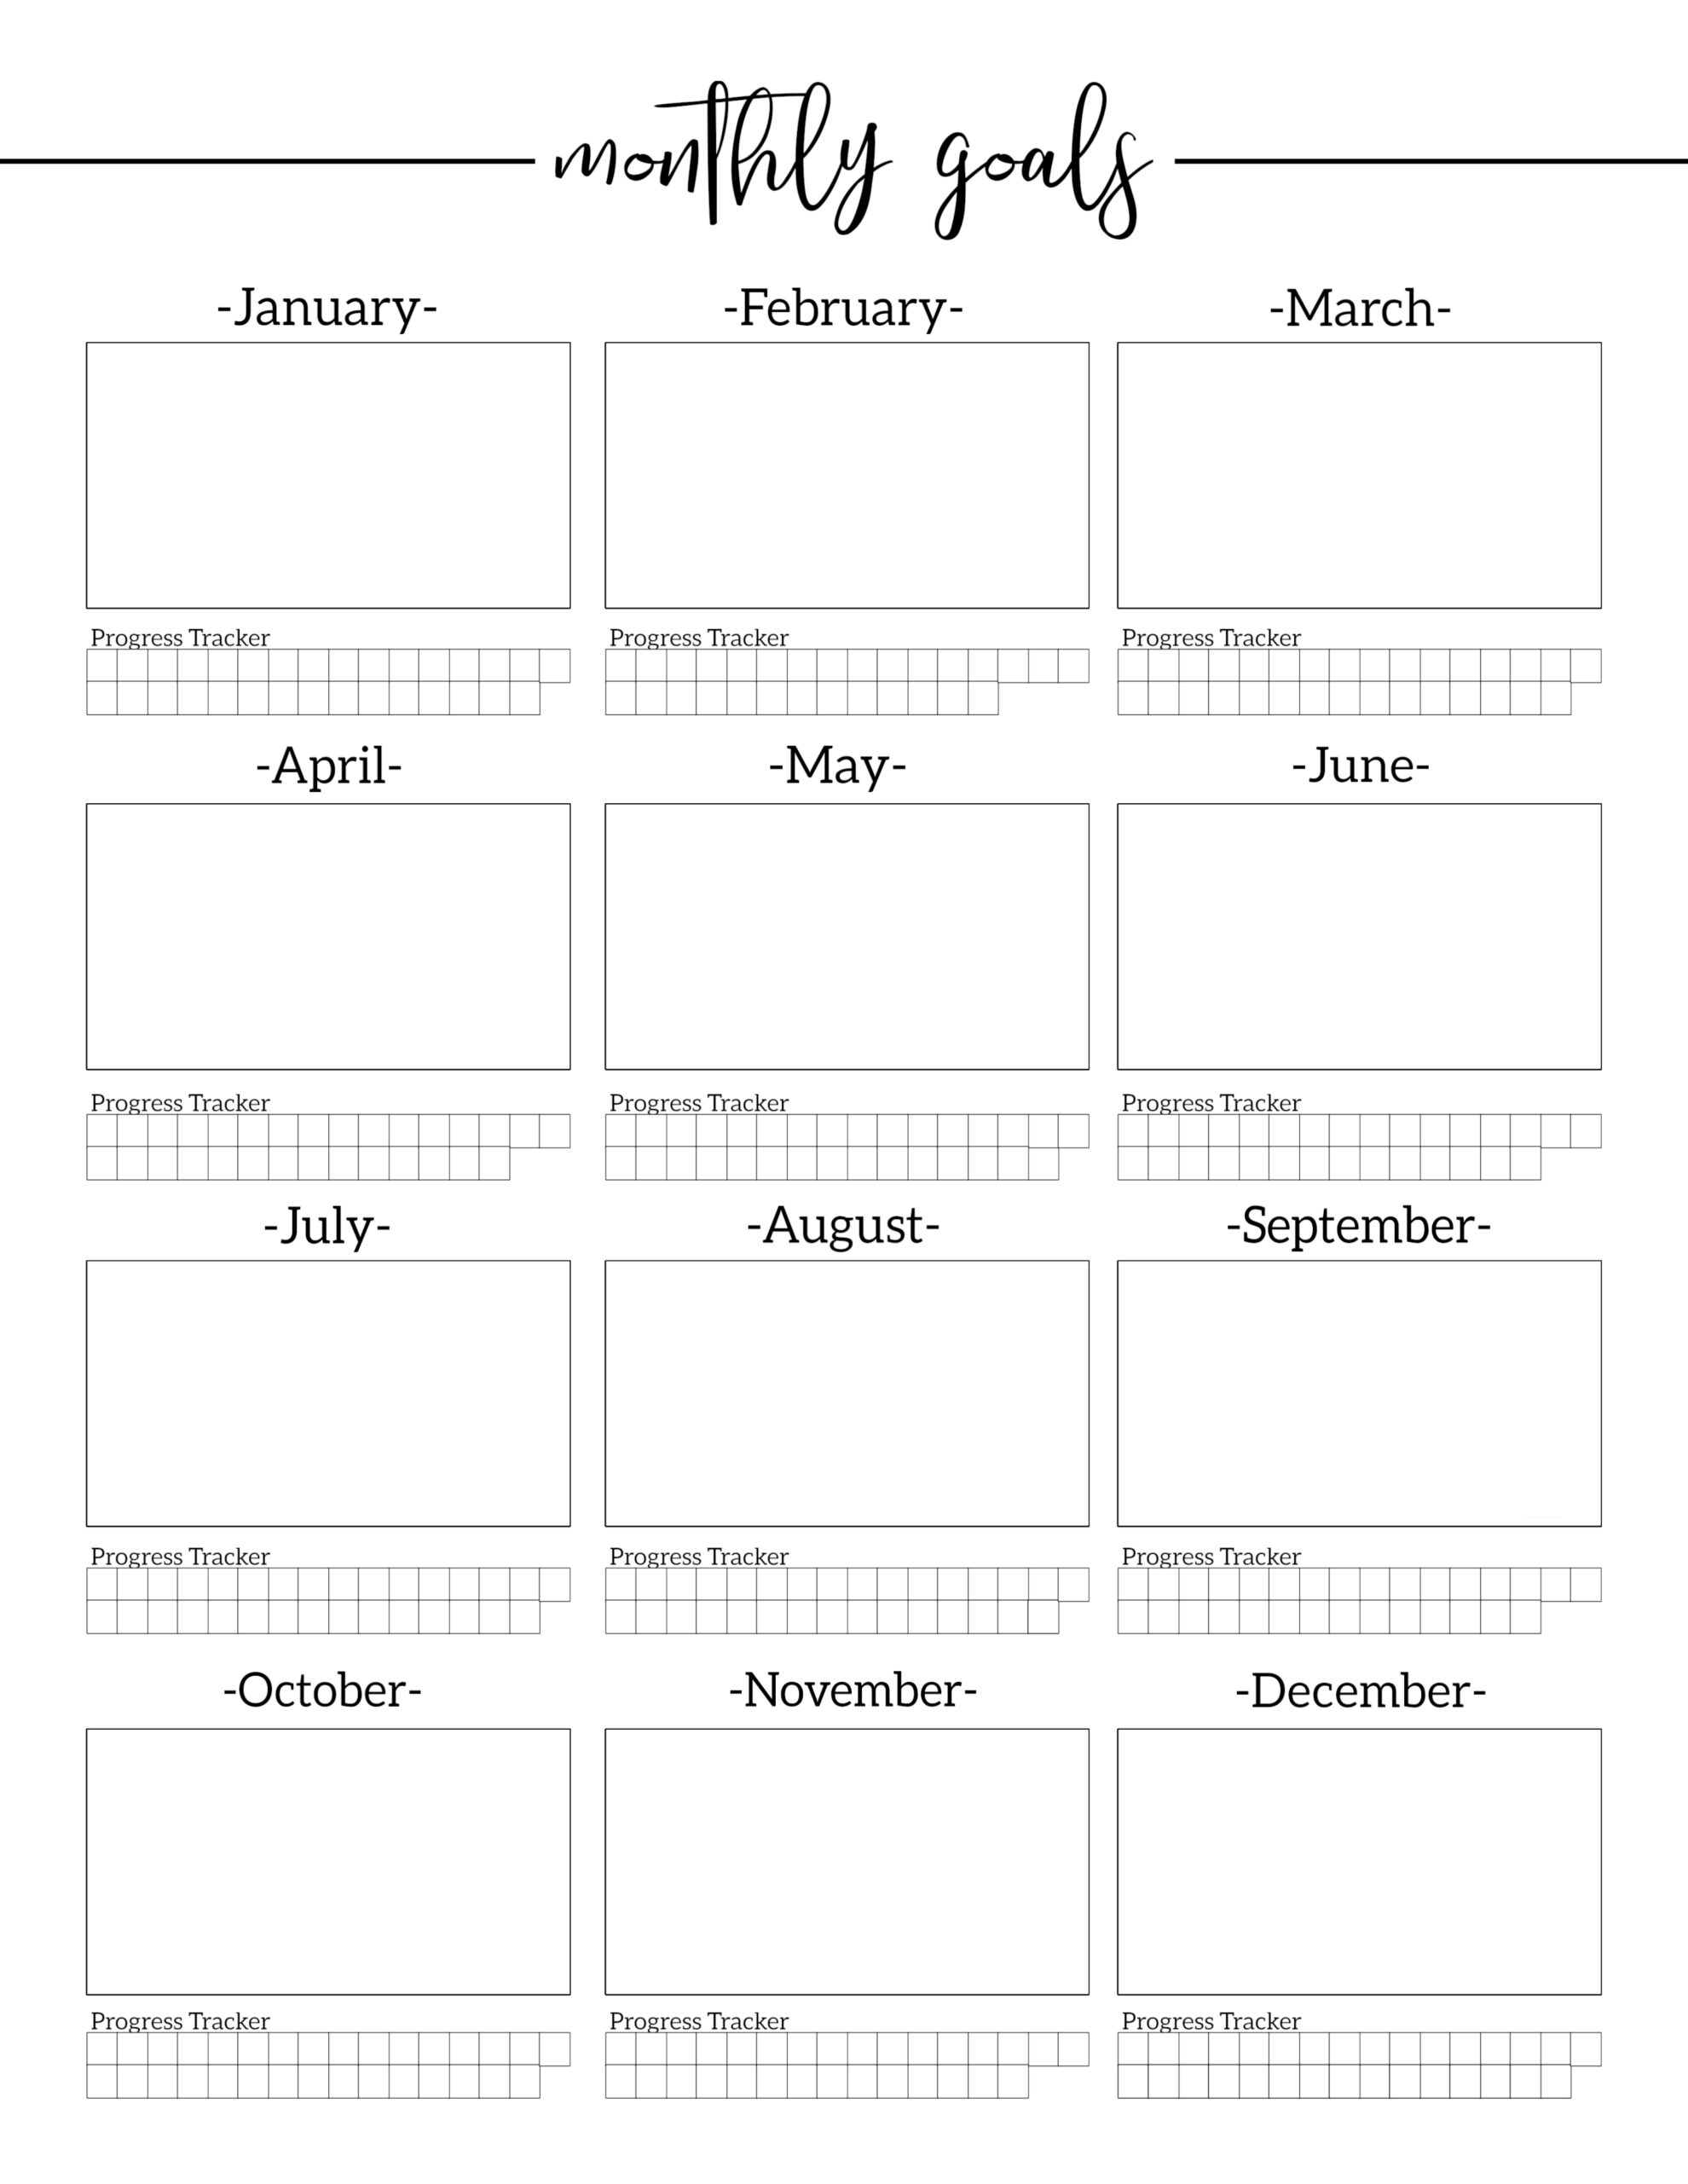 Monthly Goal Setting Worksheet With Progress Tracker Paper Trail Design